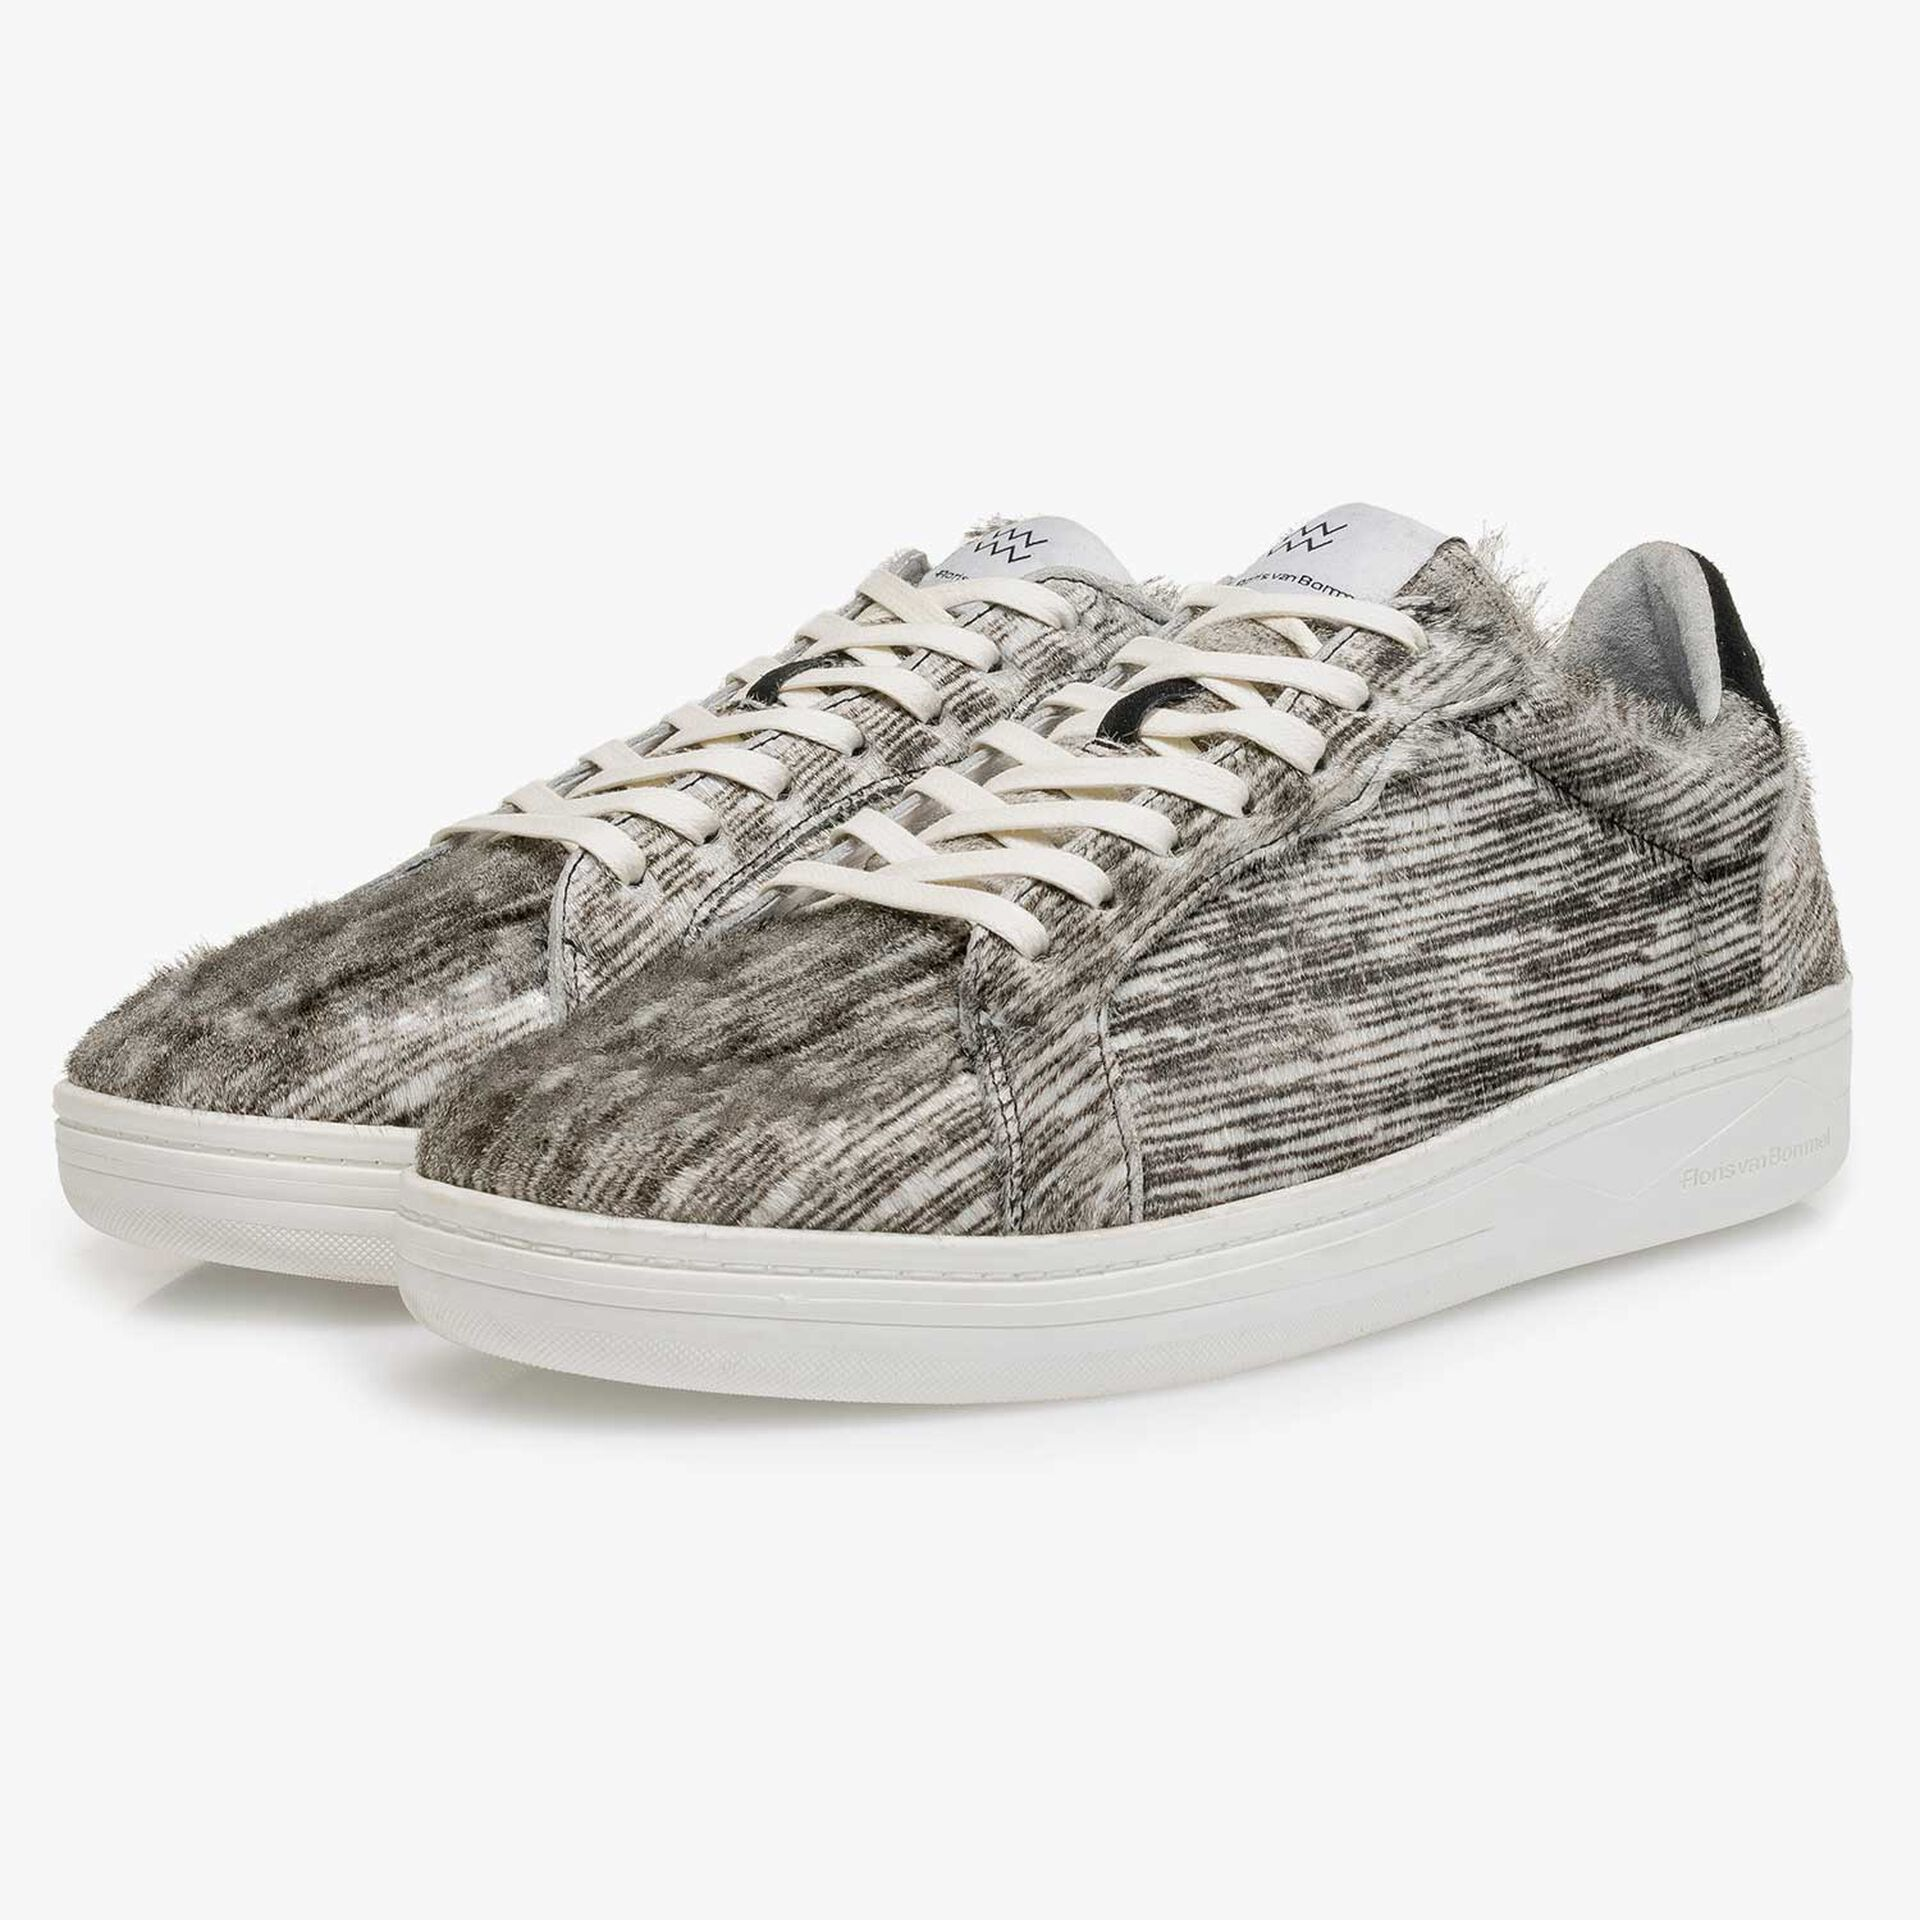 Premium off-white pony hair sneaker with striped pattern